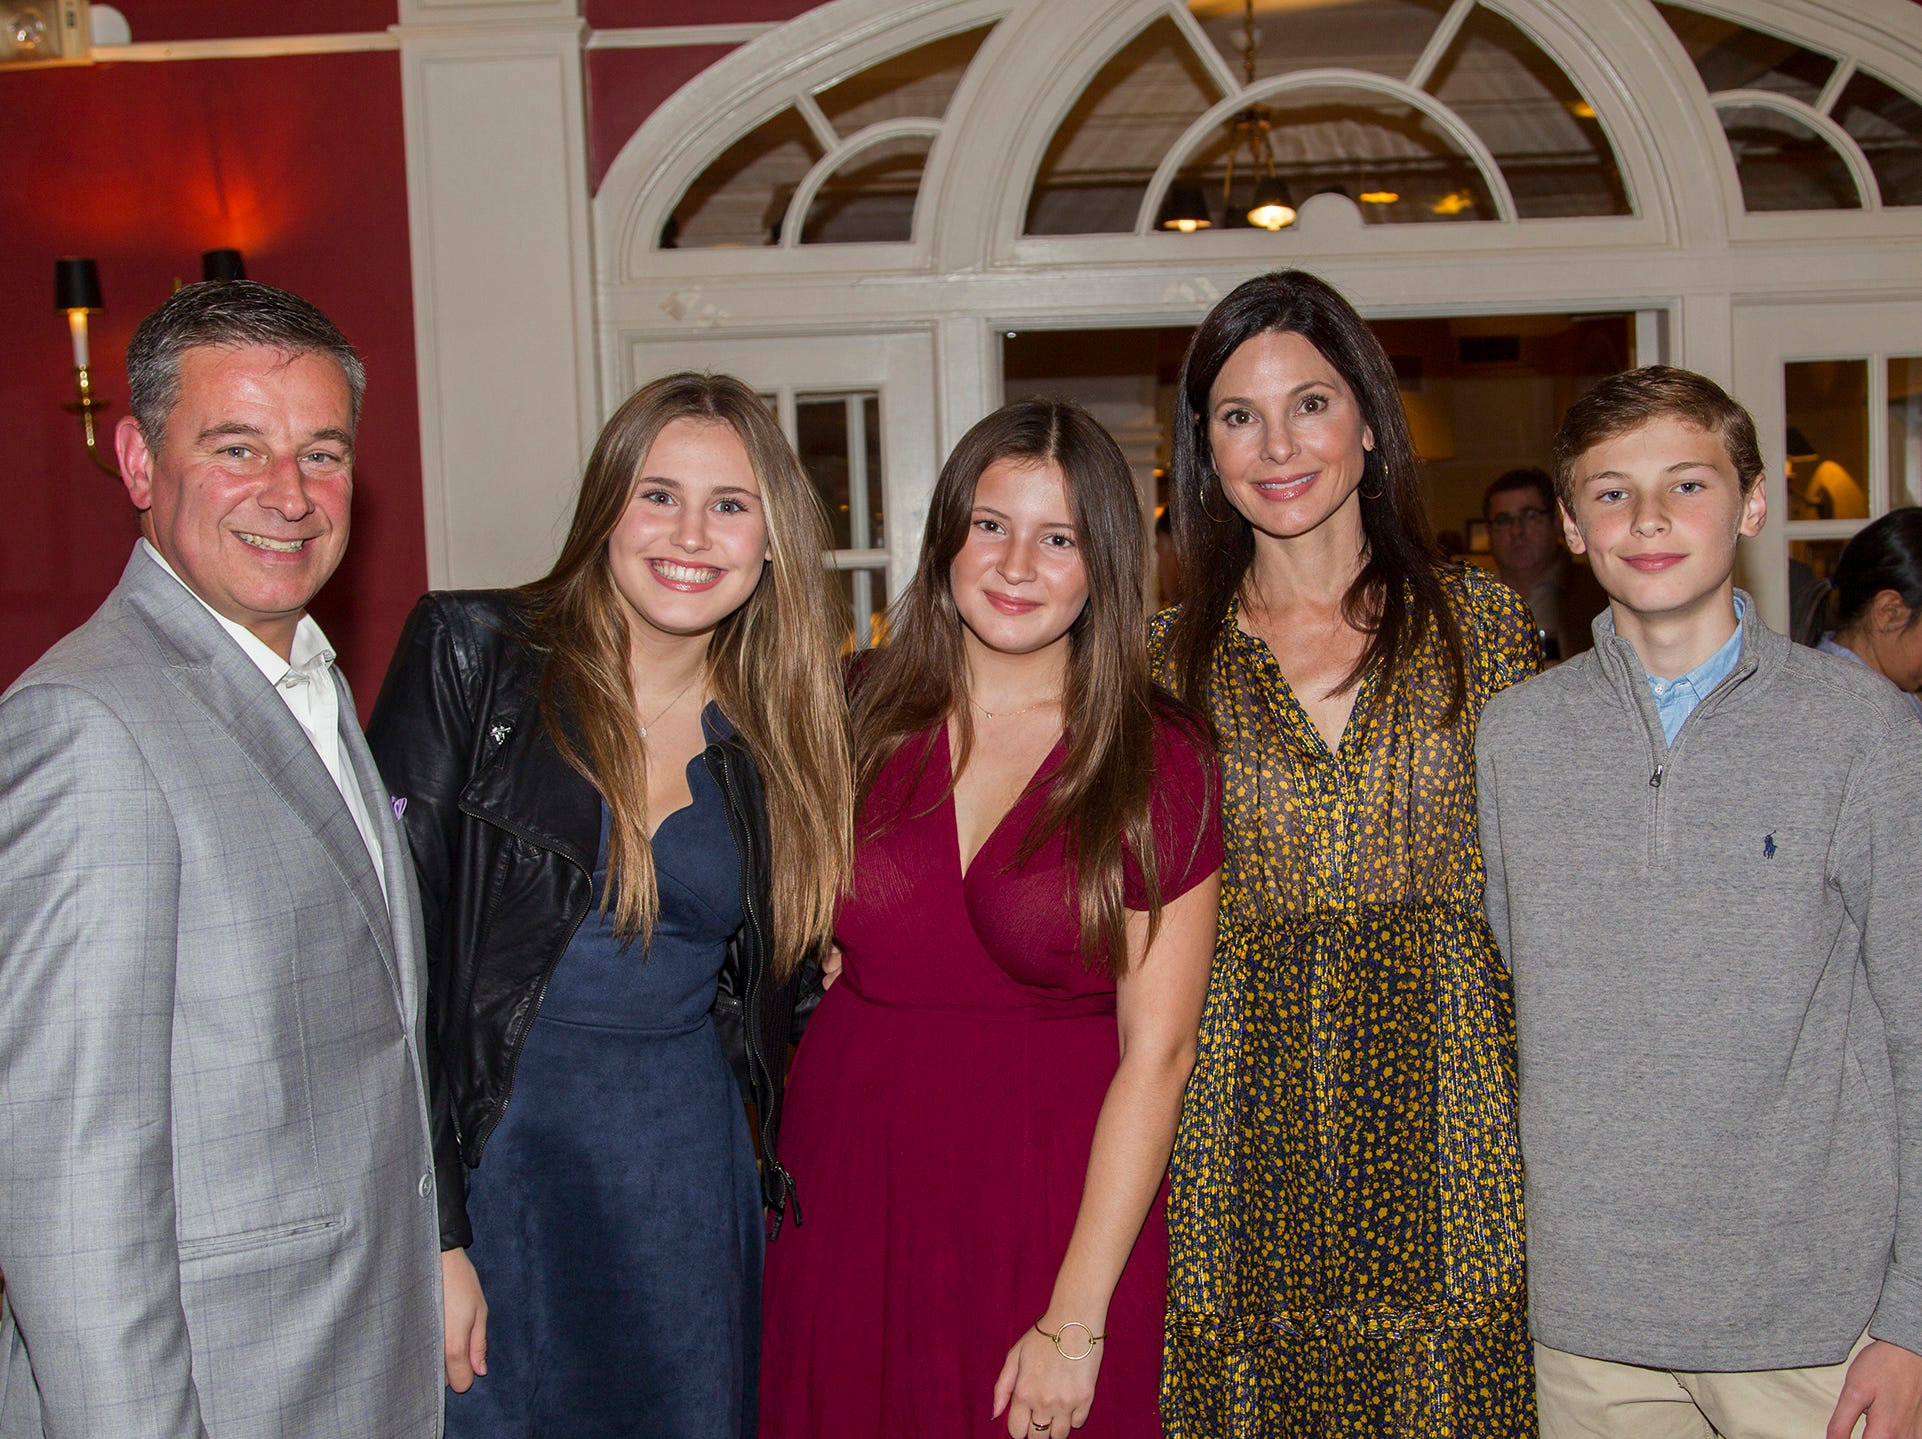 Anthony, Christine, Catherine, Lily, Dante Implicito. Seventh annual AIR Express Golf Outing honoring Dr. Dante Implicito, M.D. for his service to Hackensack University Medical Center. 10/16/2018